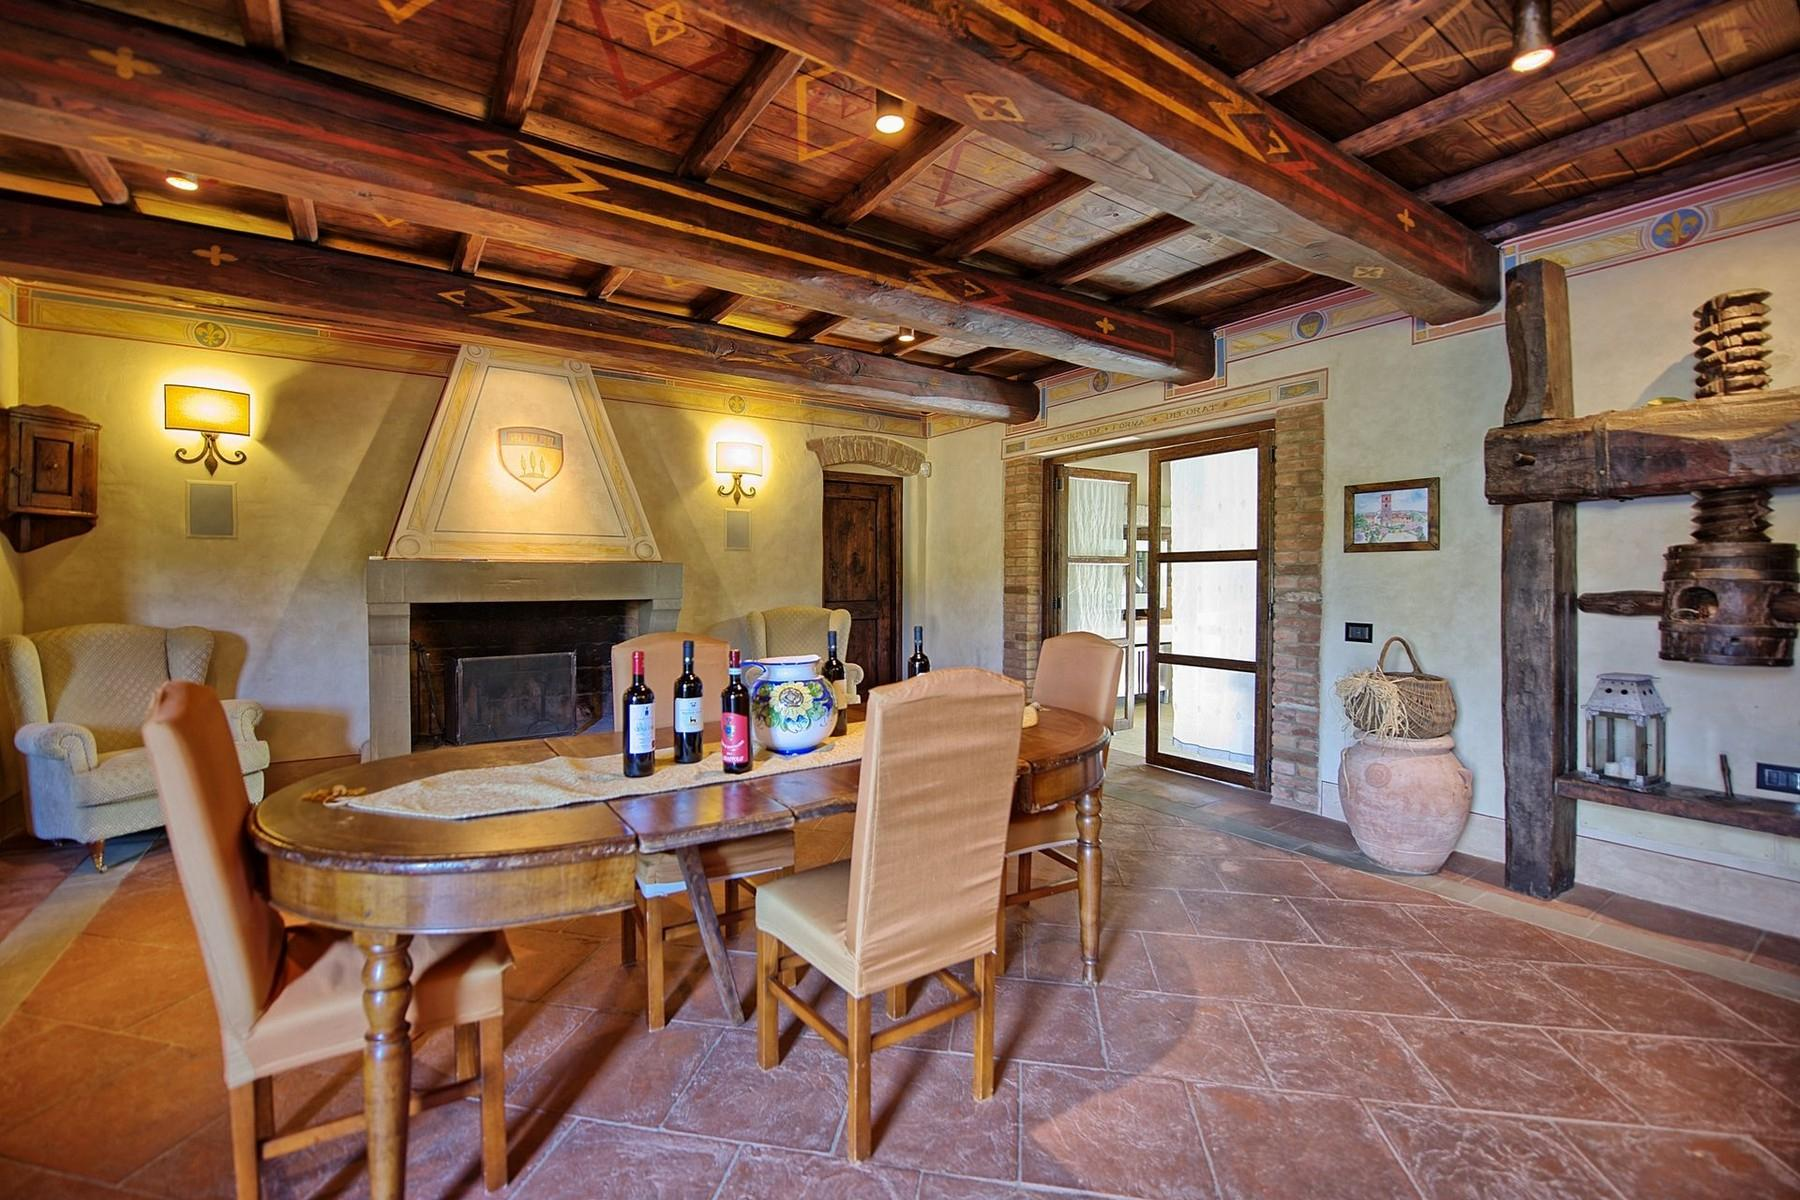 Farmhouse for sale in the Tuscan hills - 8